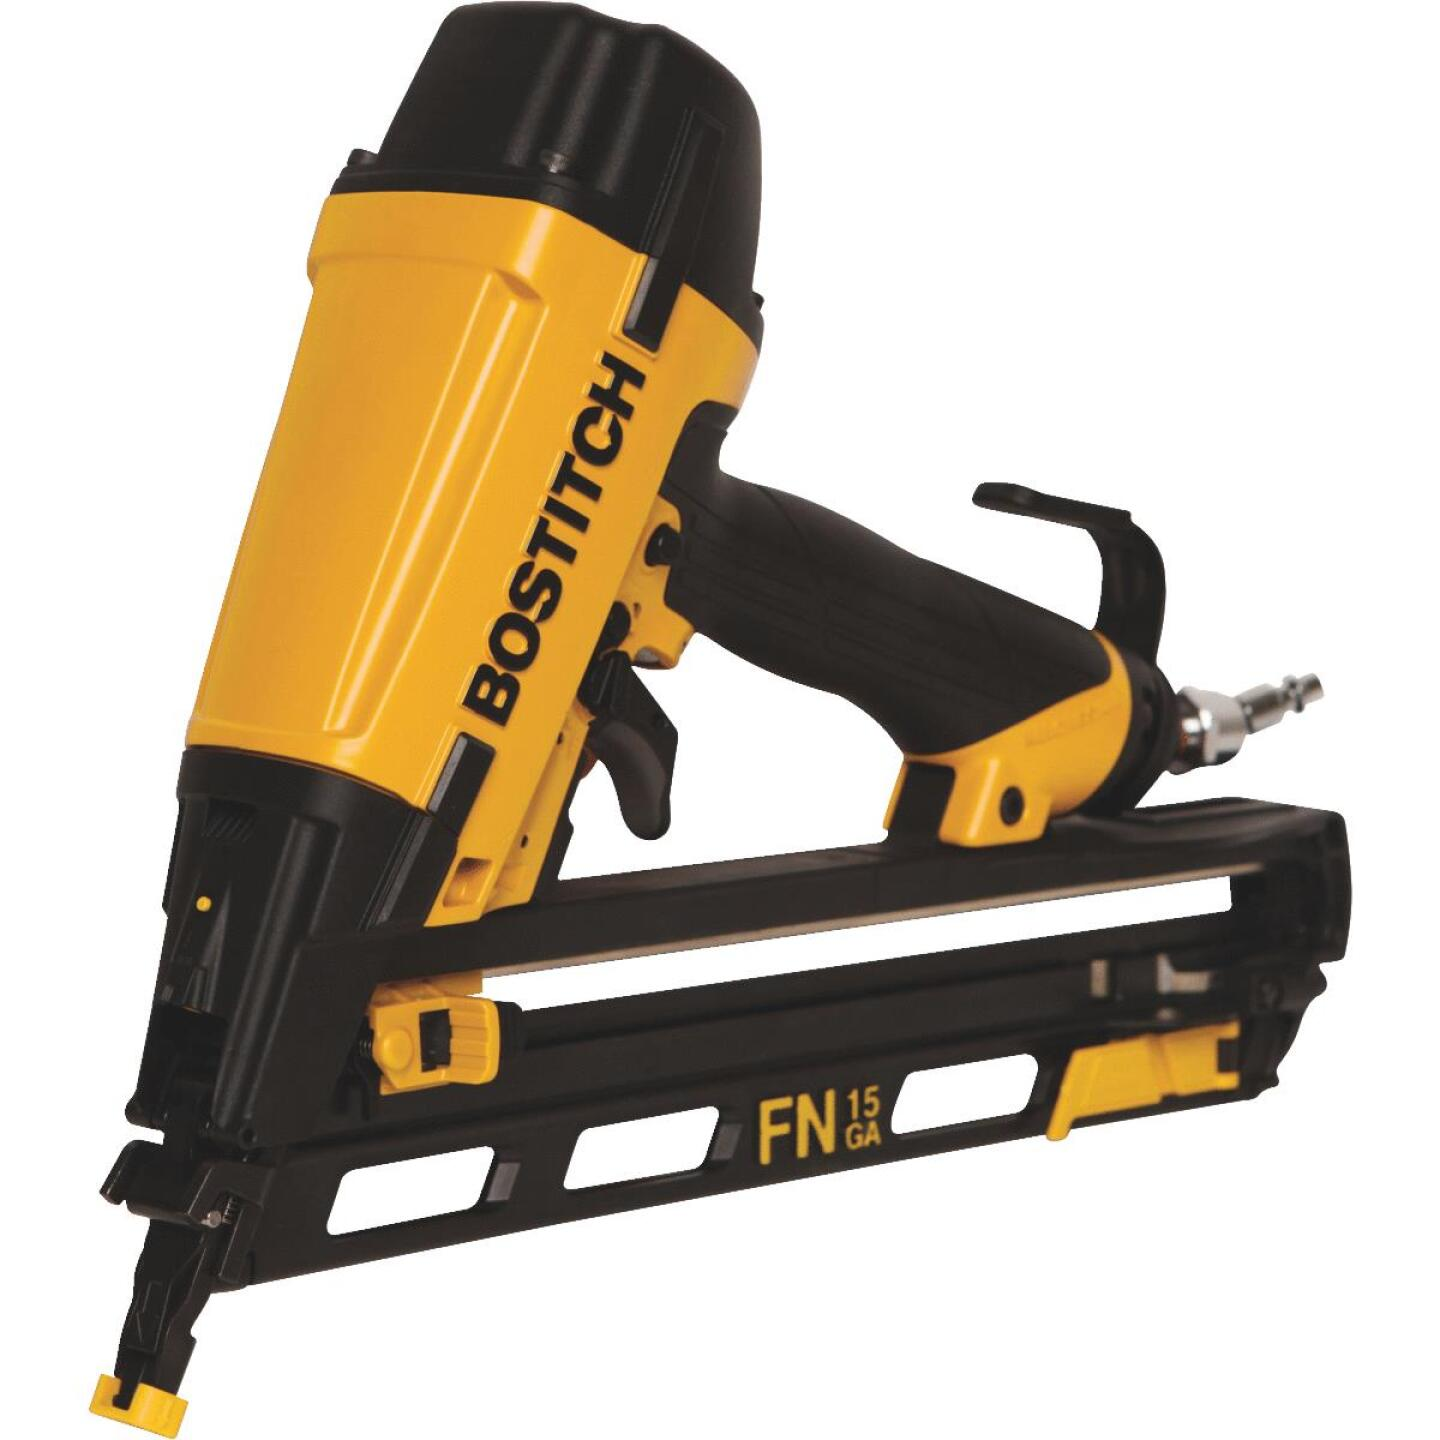 Bostitch 15-Gauge 2-1/2 In. Angled Finished Nailer Image 4